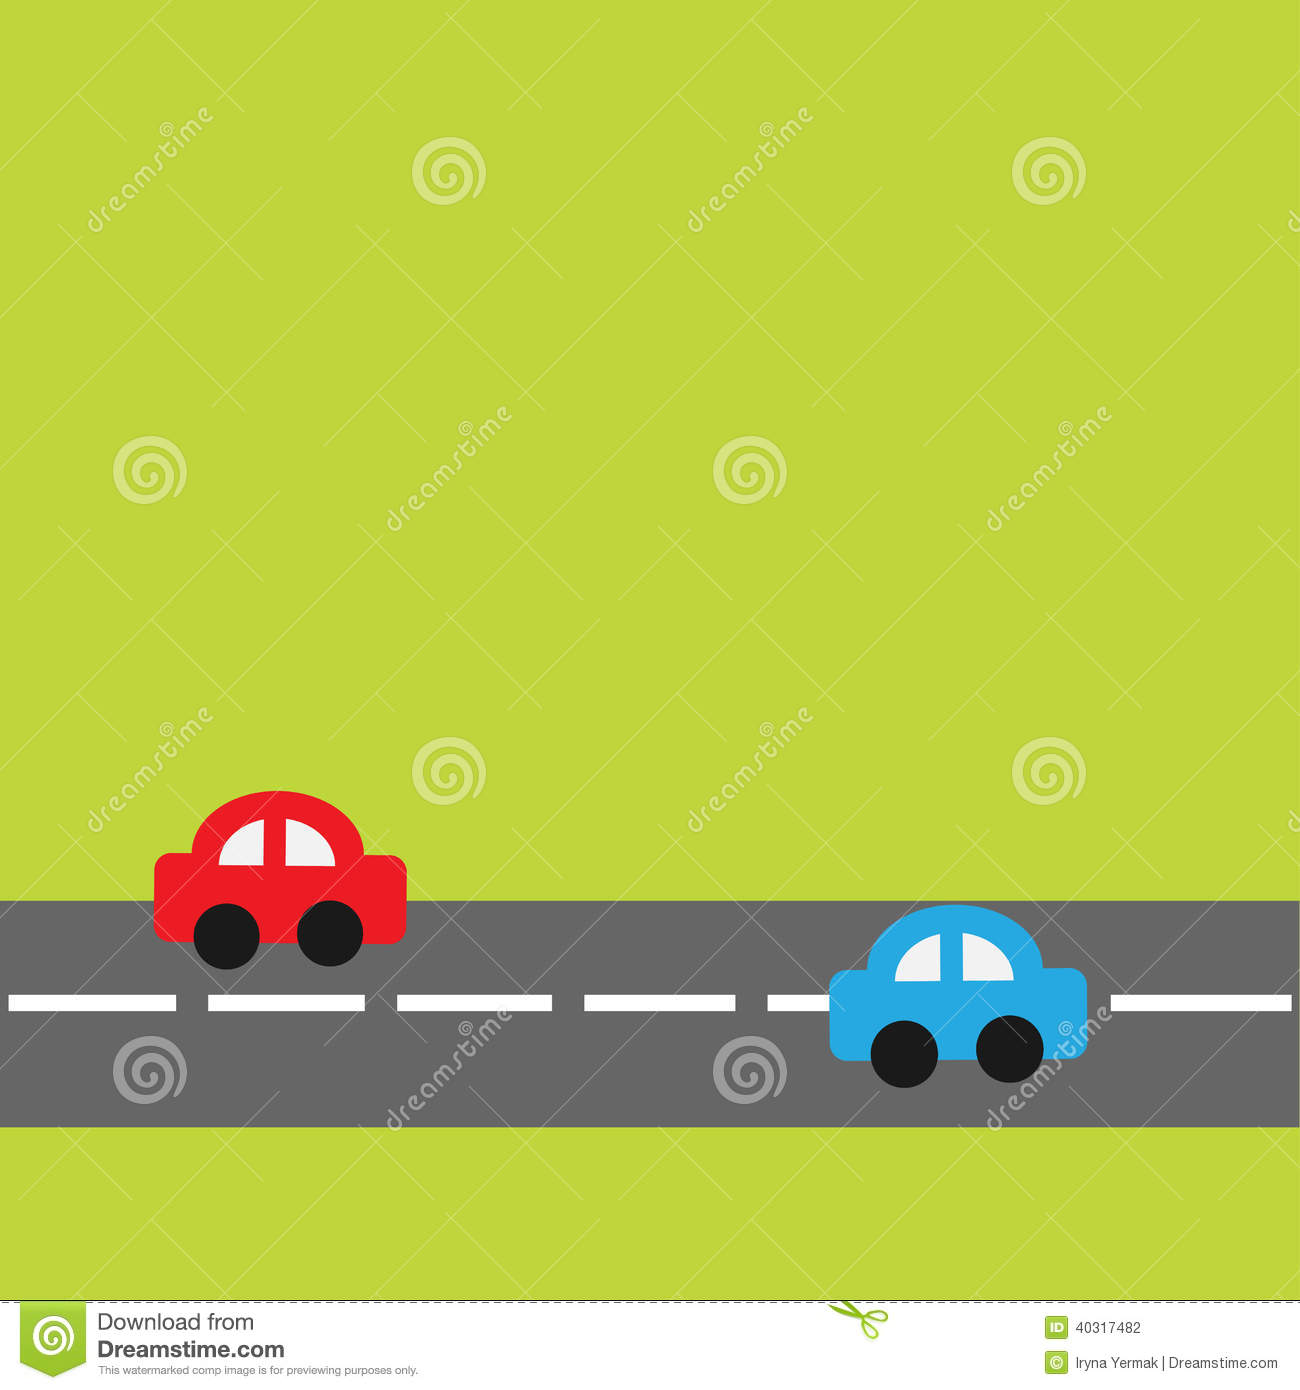 Background With Horizontal Road And Cartoon Cars Stock Vector